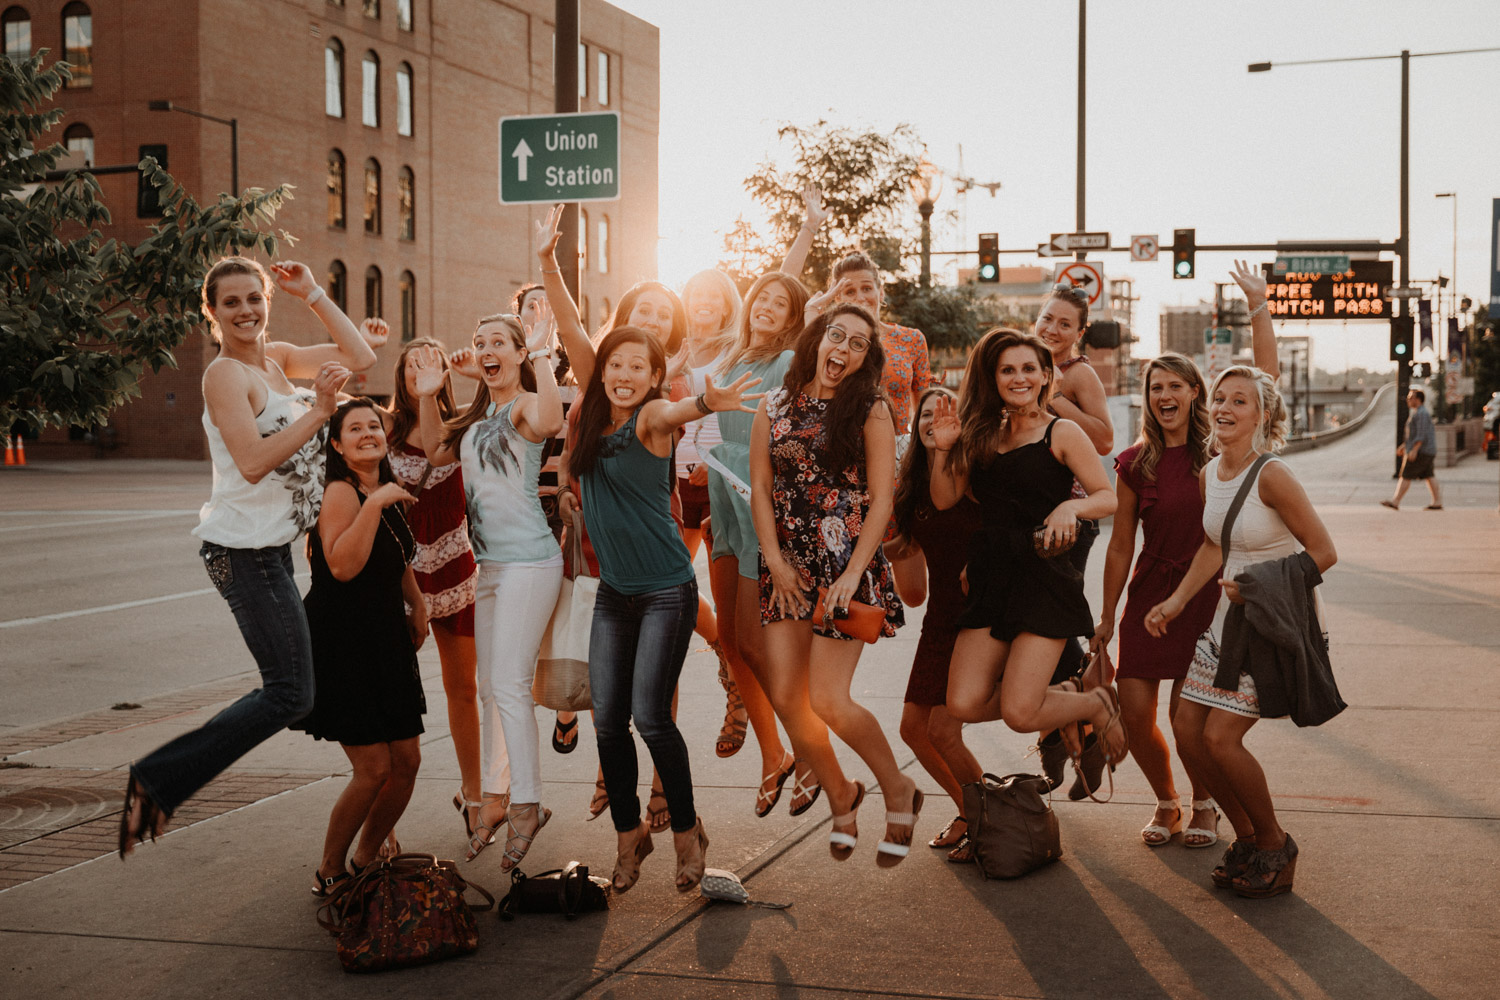 Tabitha Roth Schweizer Hochzeitsfotografin  USA Colorado destination wedding outdoor Bachelorette party